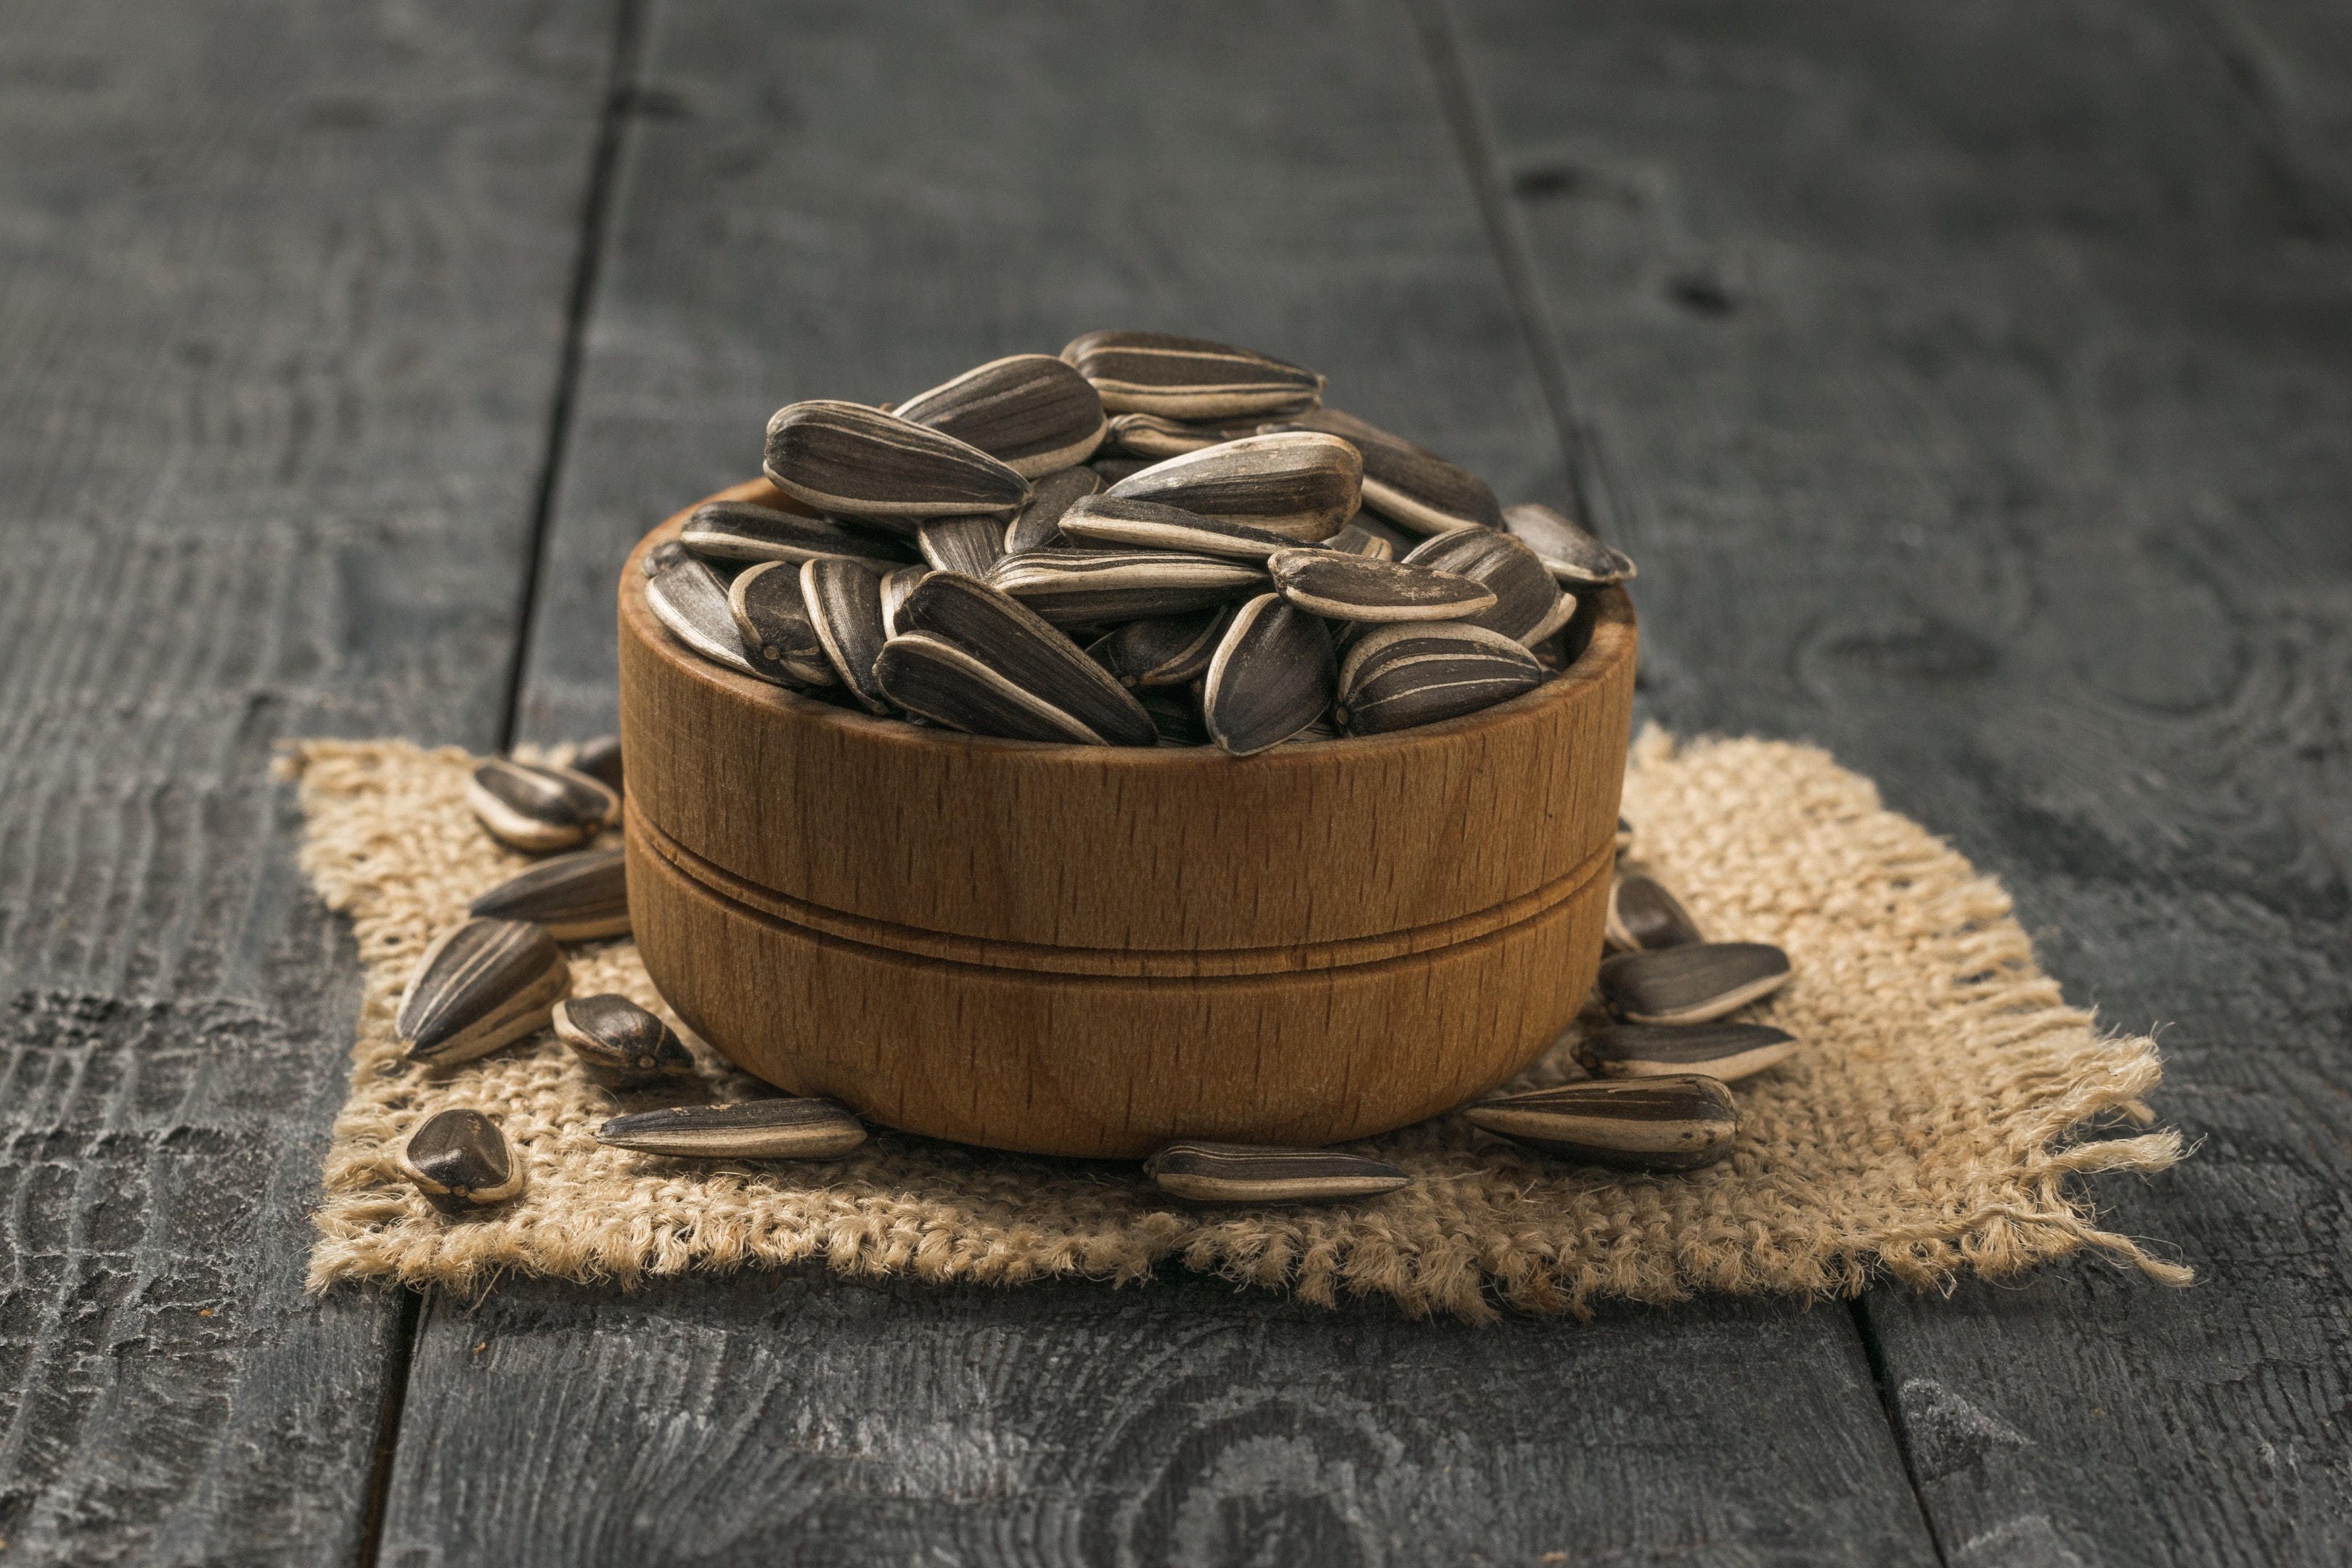 Wooden bowl with sunflower seeds on wooden table